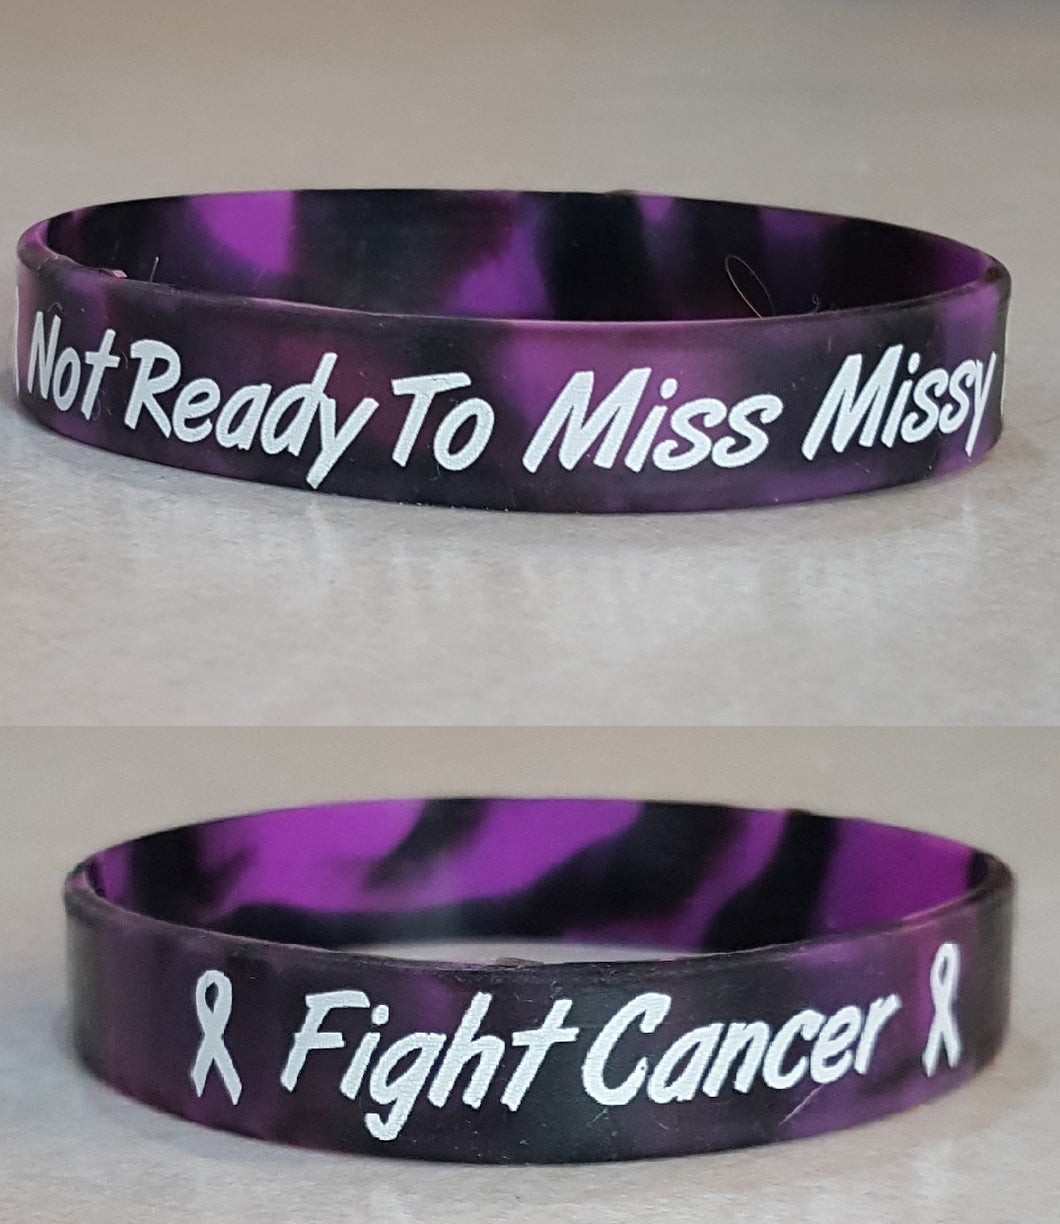 Fight Cancer Bracelet for Missy Wanke